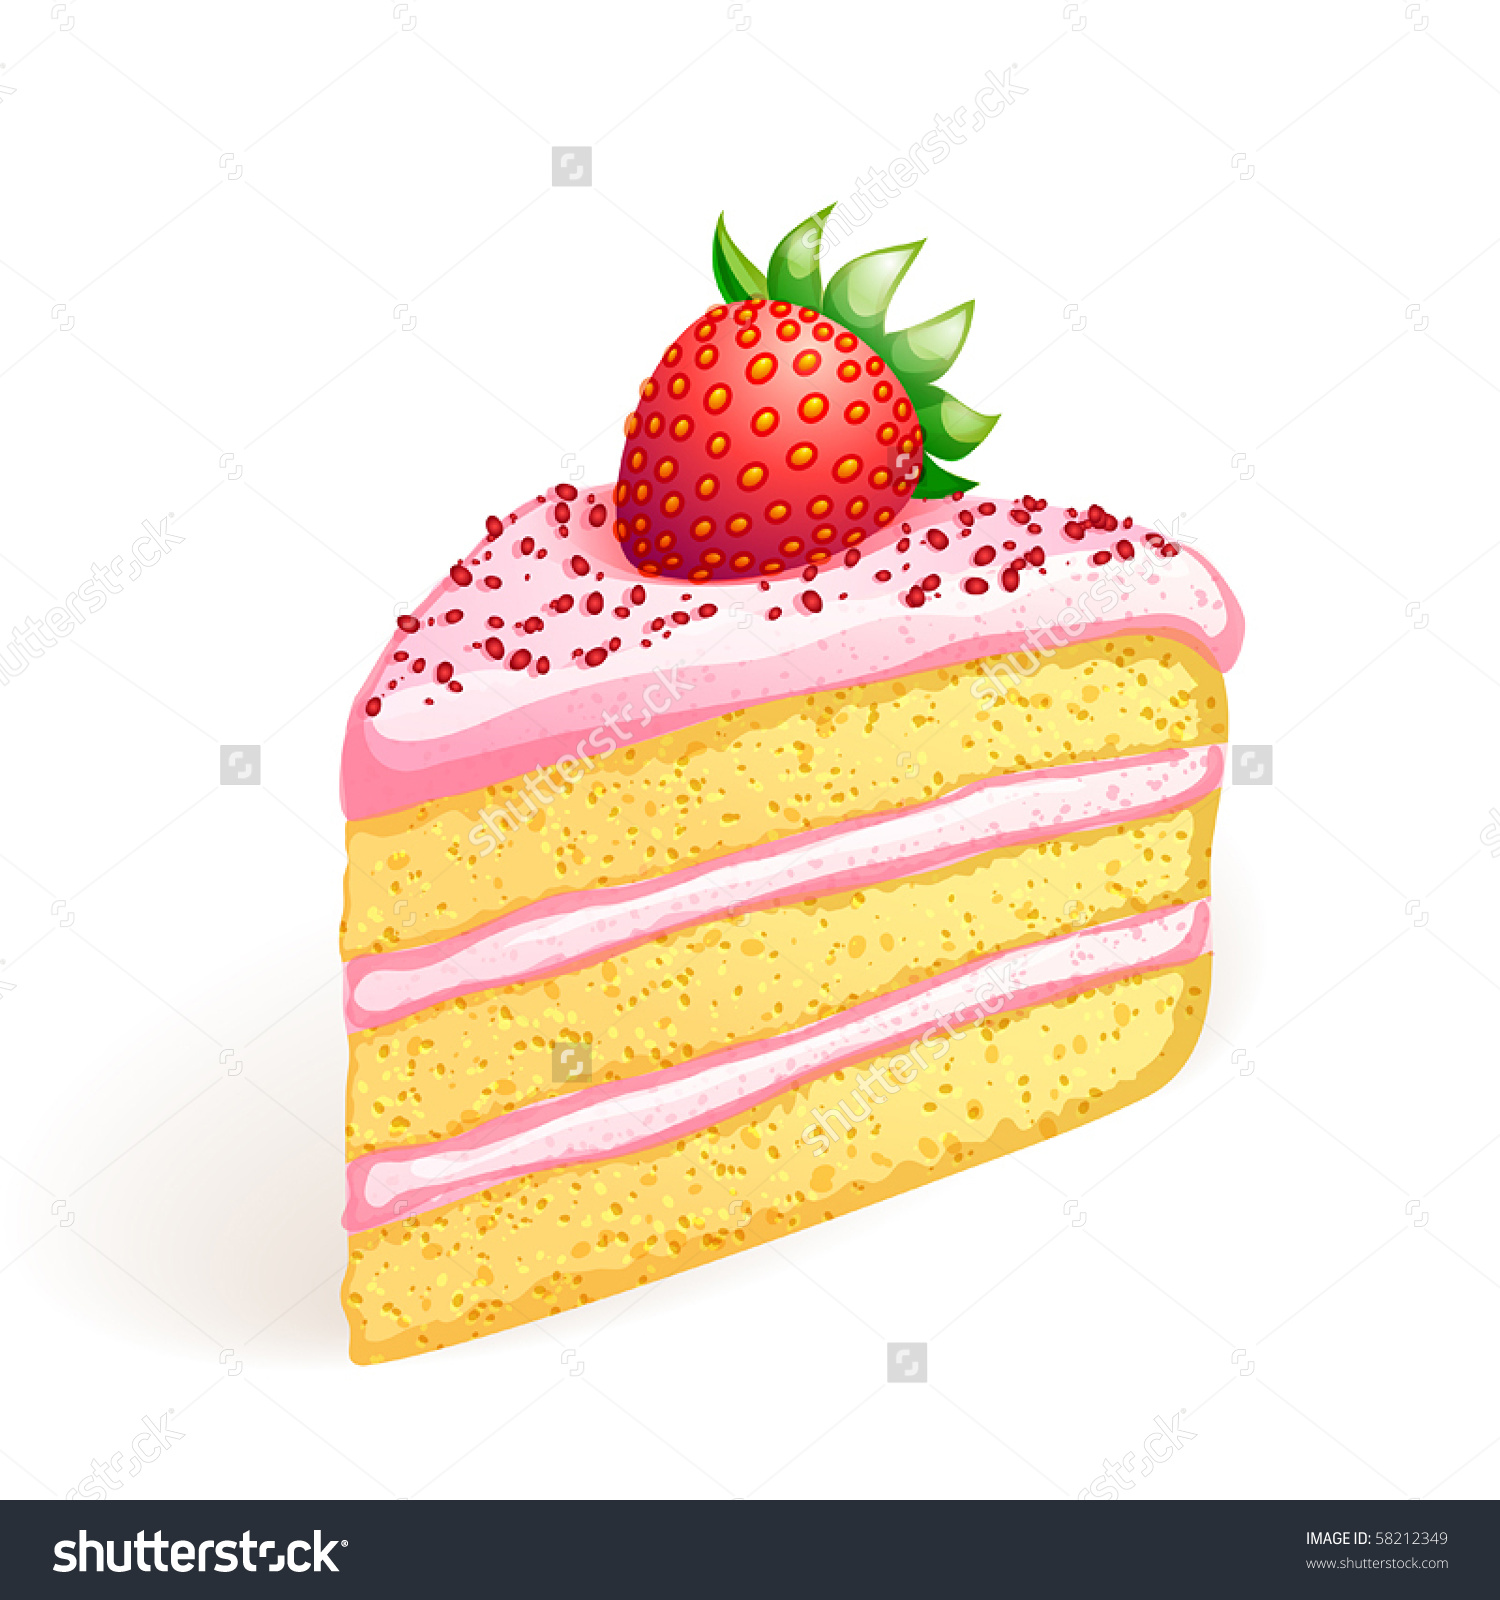 Piece Of Cake With Strawberry.